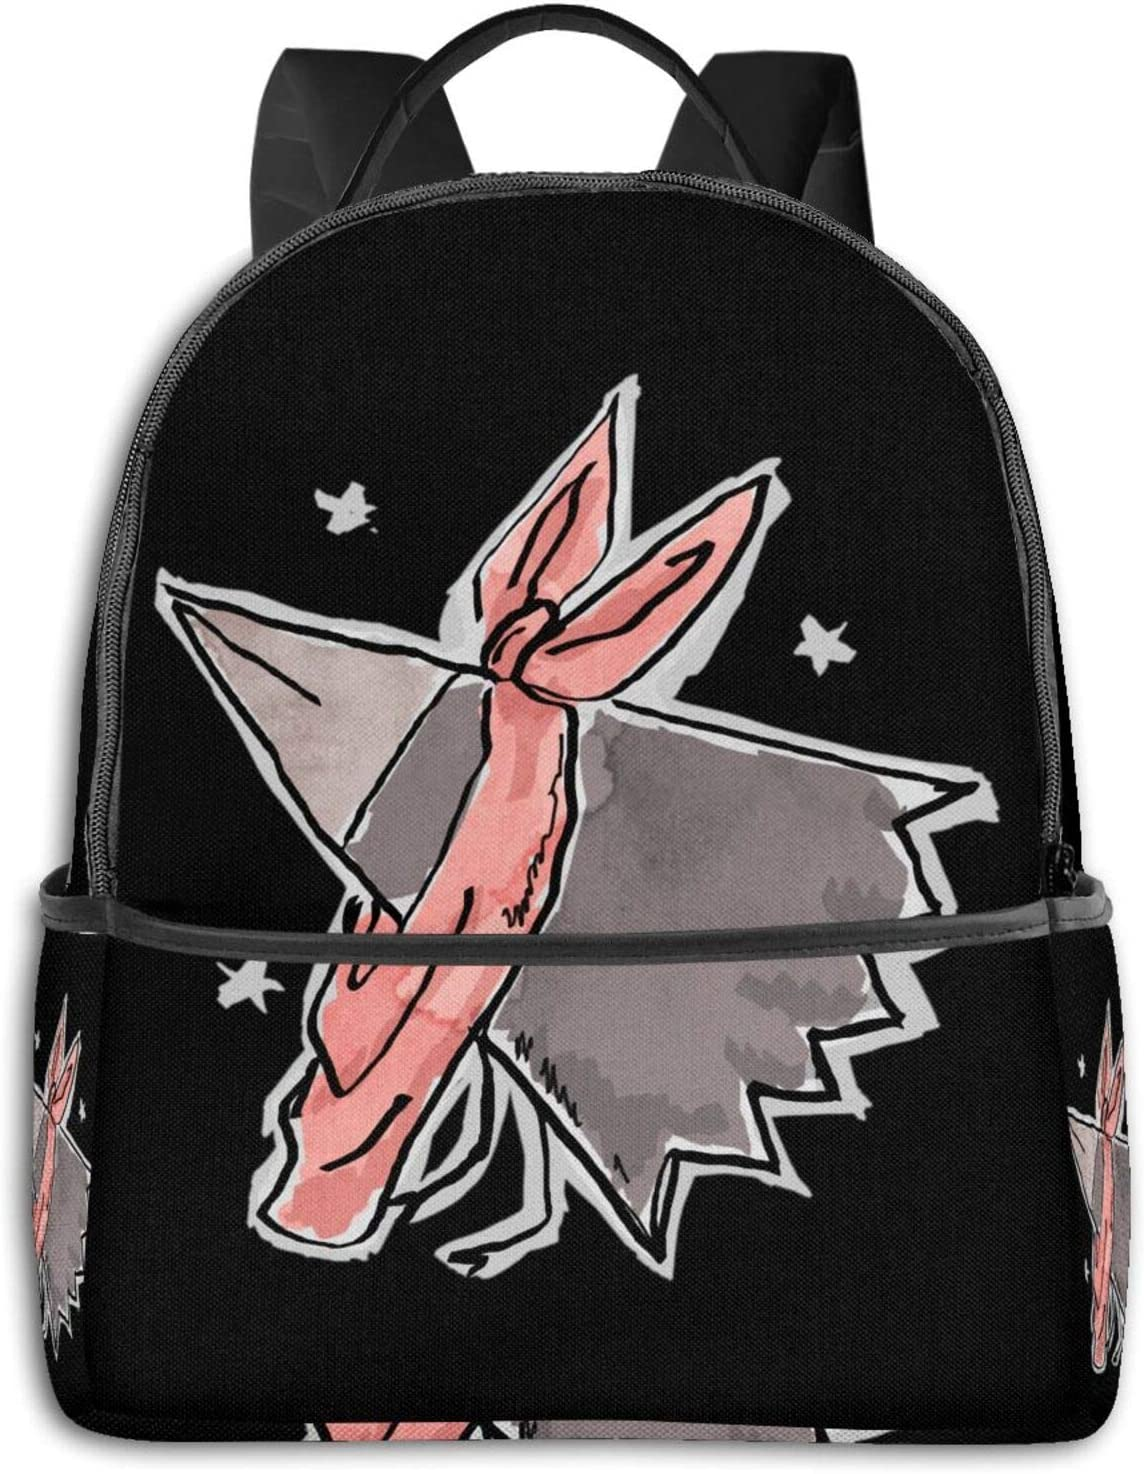 Gifts Anime Nichijou Super beauty product restock quality top! - Crow Student Cycling Leisur Bag School